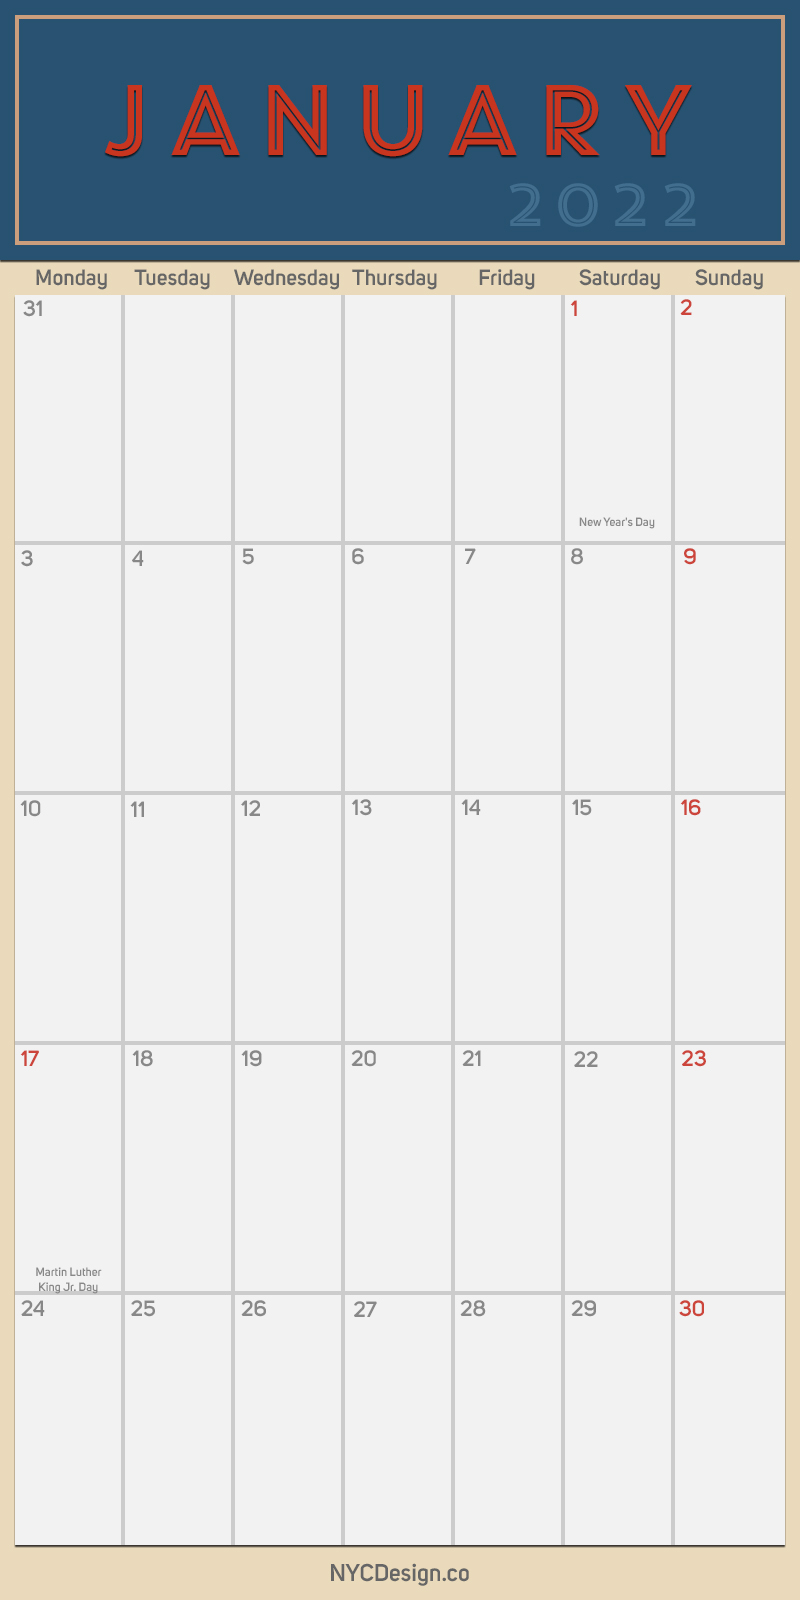 2022 January - Monthly Calendar, Planner, Printable Free ...